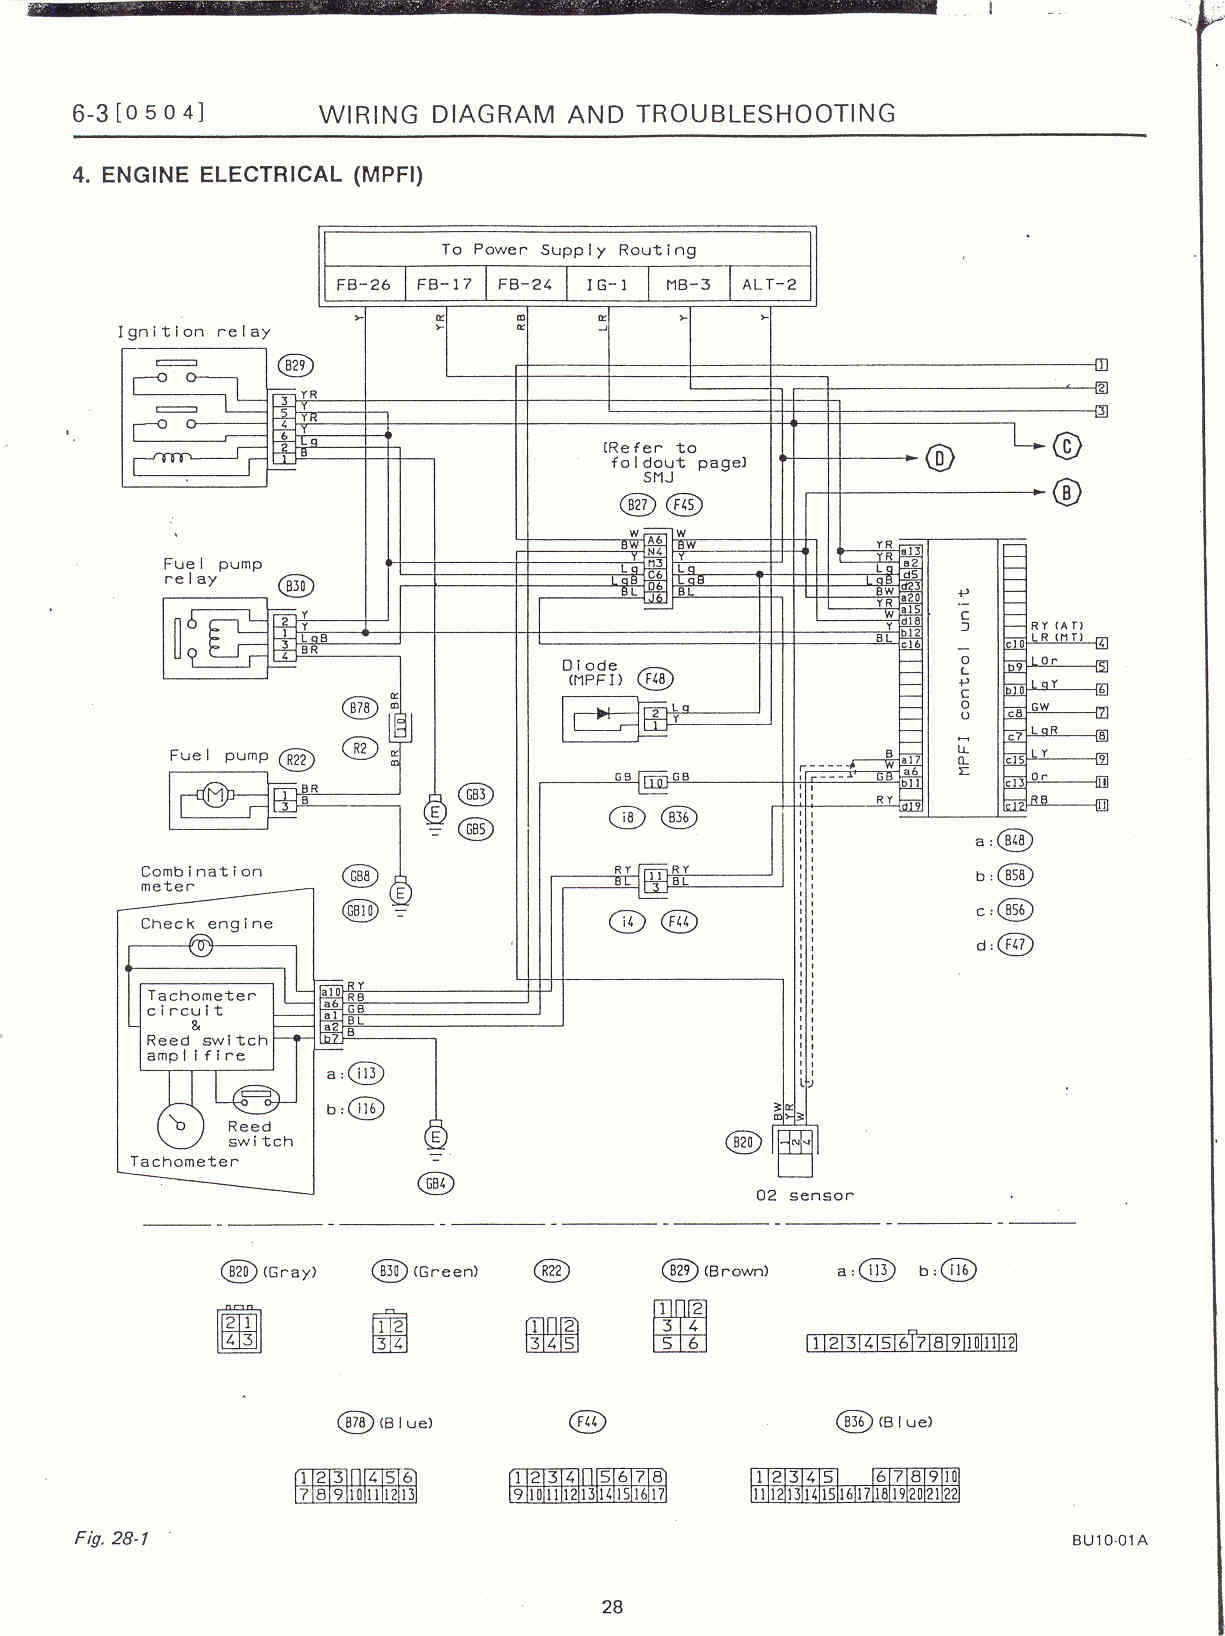 hight resolution of wiring diagrams 1991 subaru legacy wiring diagram data wiring subaru stereo wiring harness diagram 1997 subaru